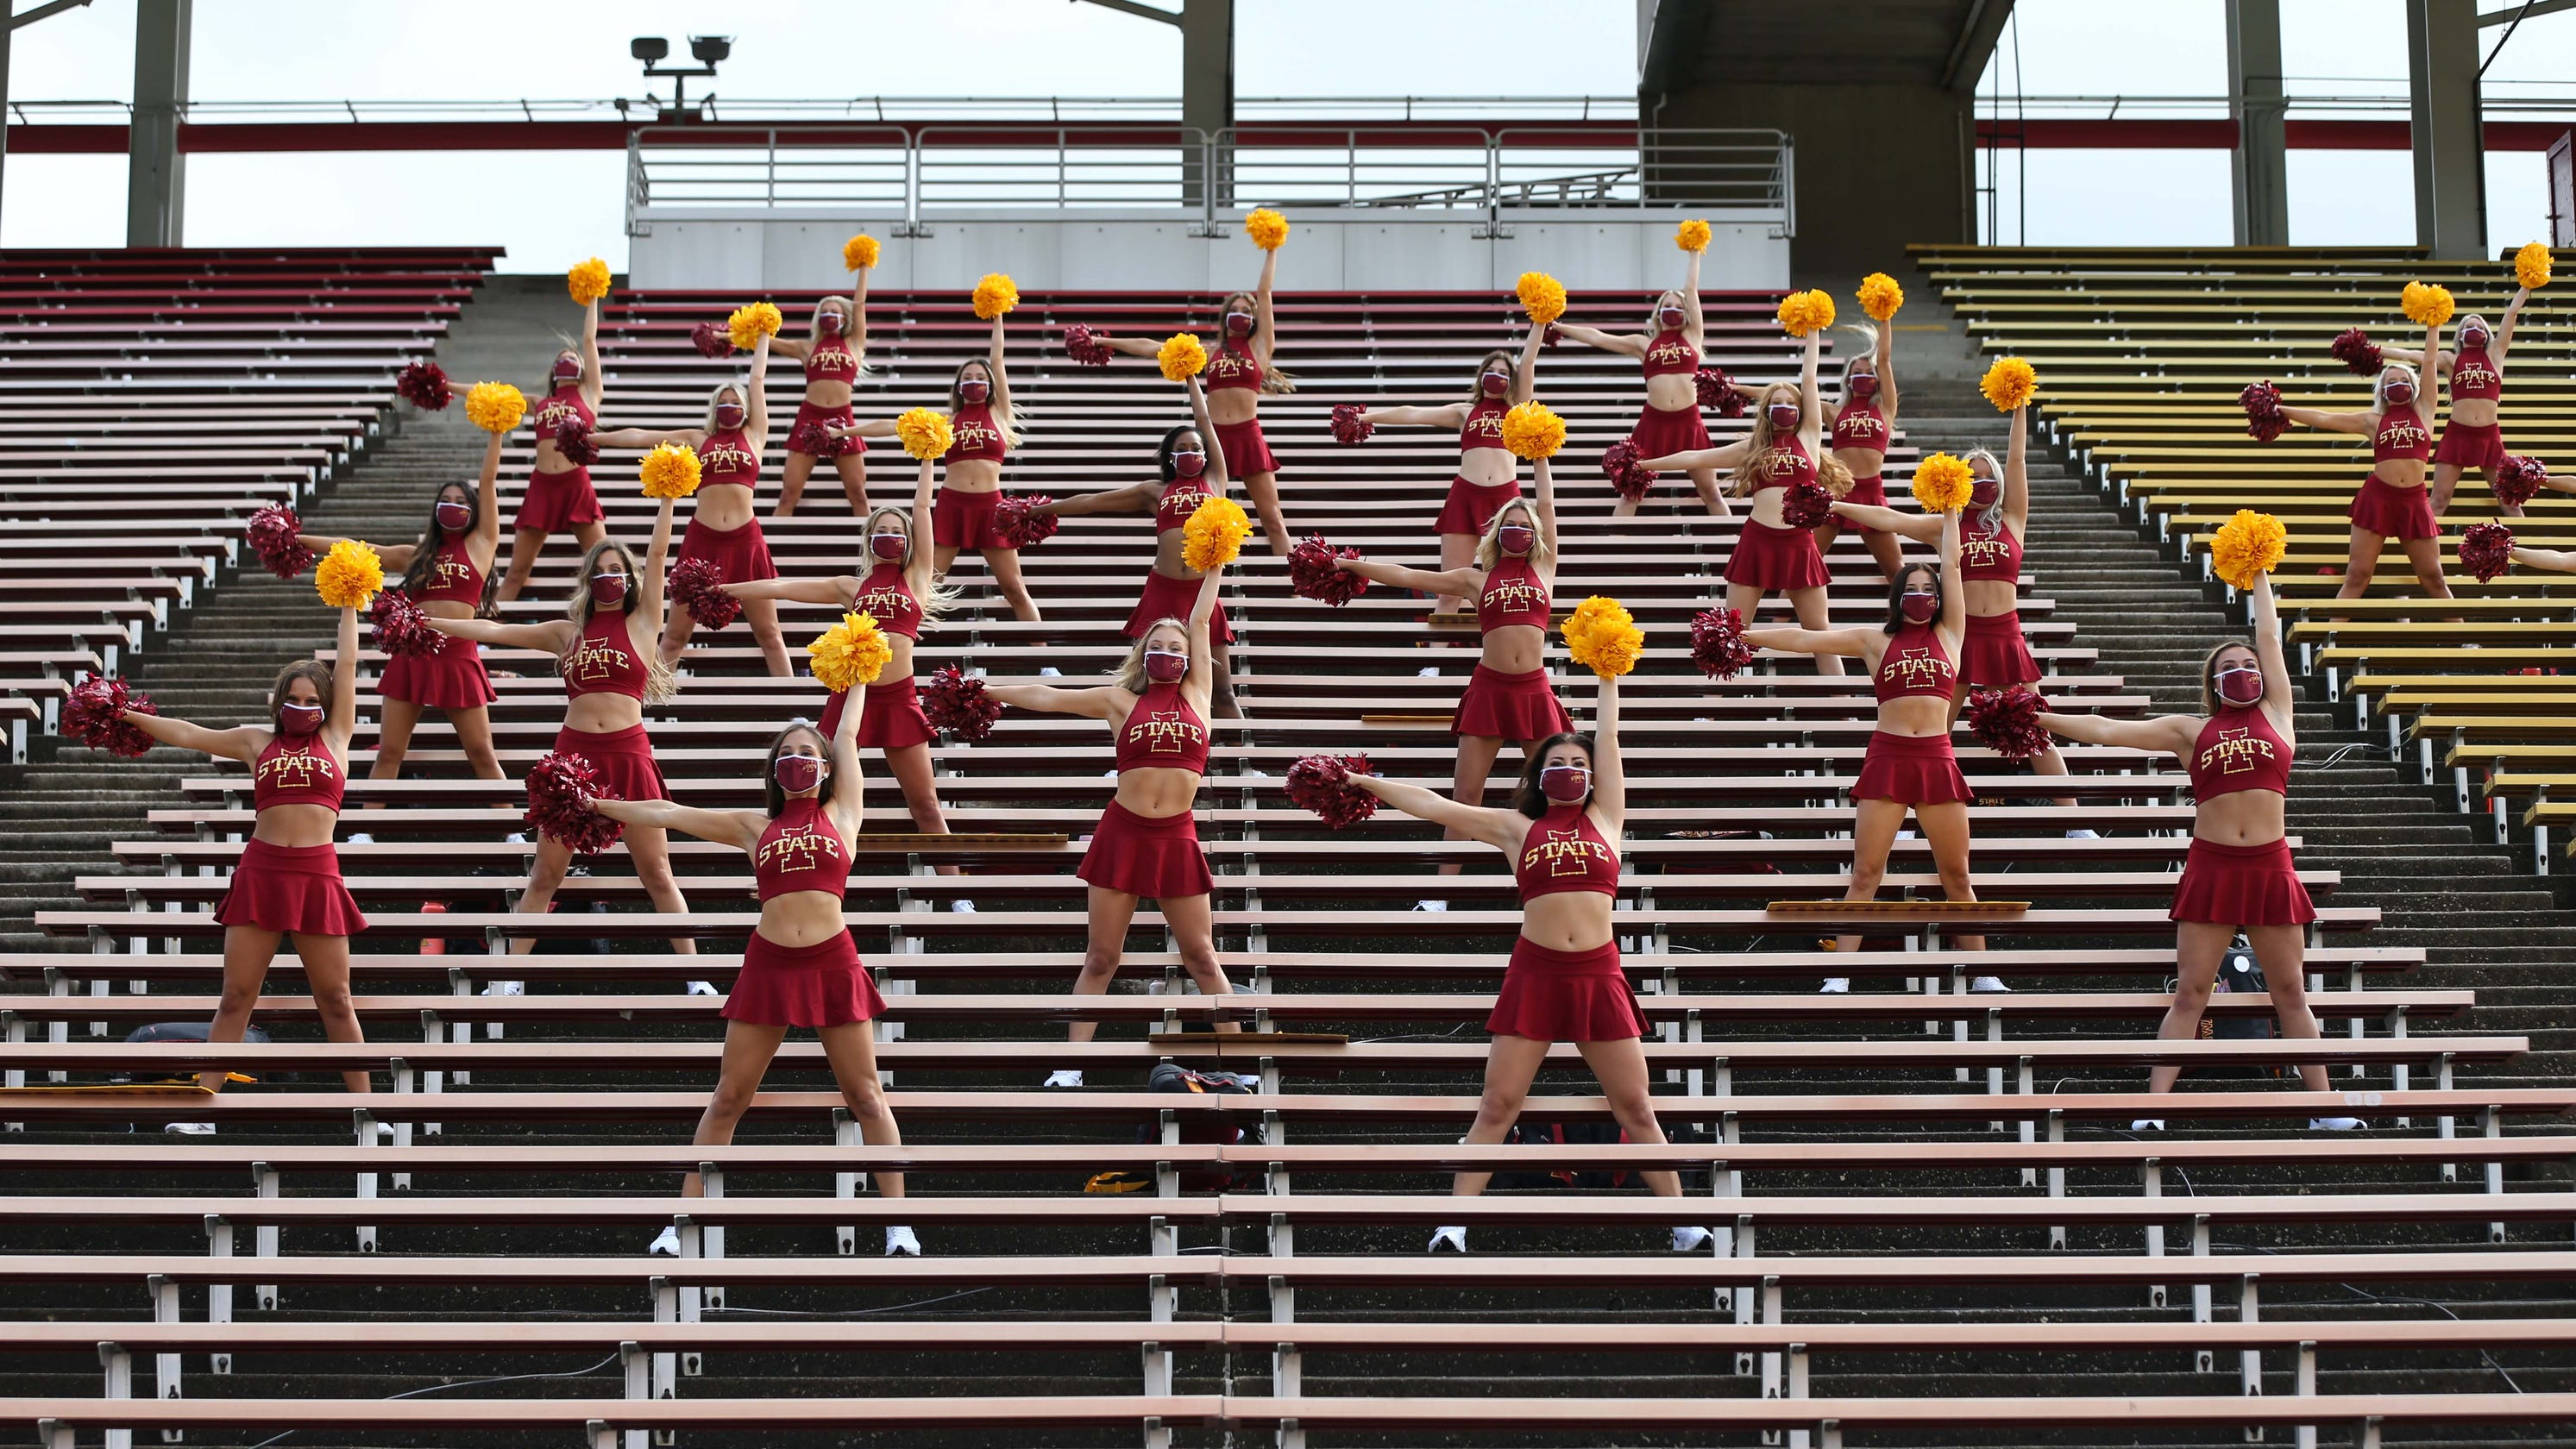 Iowa State to have 15,000 fans at Jack Trice Stadium for Oct. 3 Oklahoma game